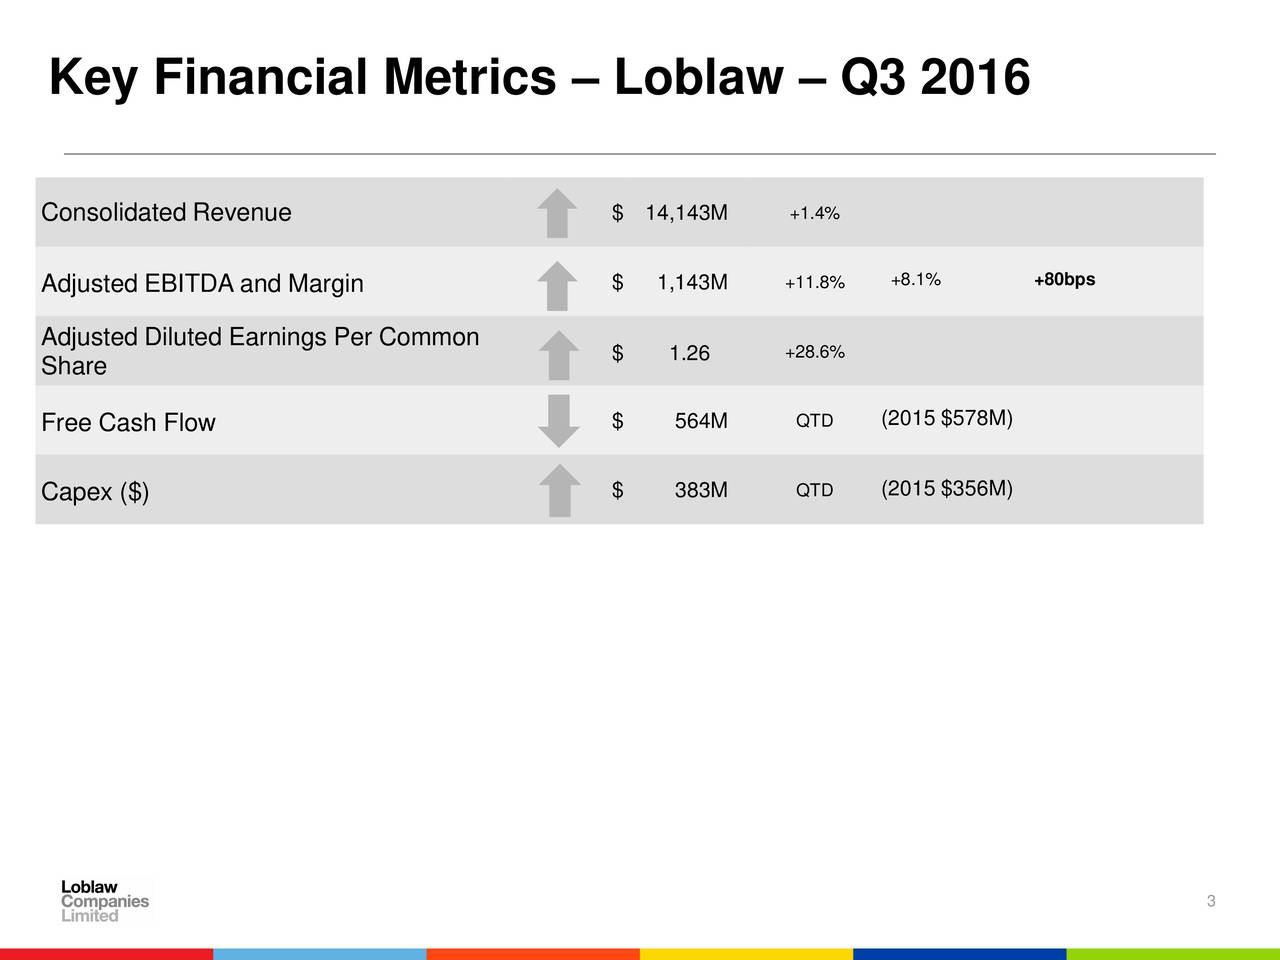 Consolidated Revenue $ 14,143M +1.4% Adjusted EBITDA and Margin $ 1,143M +11.8% +8.1% +80bps Adjusted Diluted Earnings Per Common +28.6% Share $ 1.26 (2015 $578M) Free Cash Flow $ 564M QTD Capex ($) $ 383M QTD (2015 $356M) 3